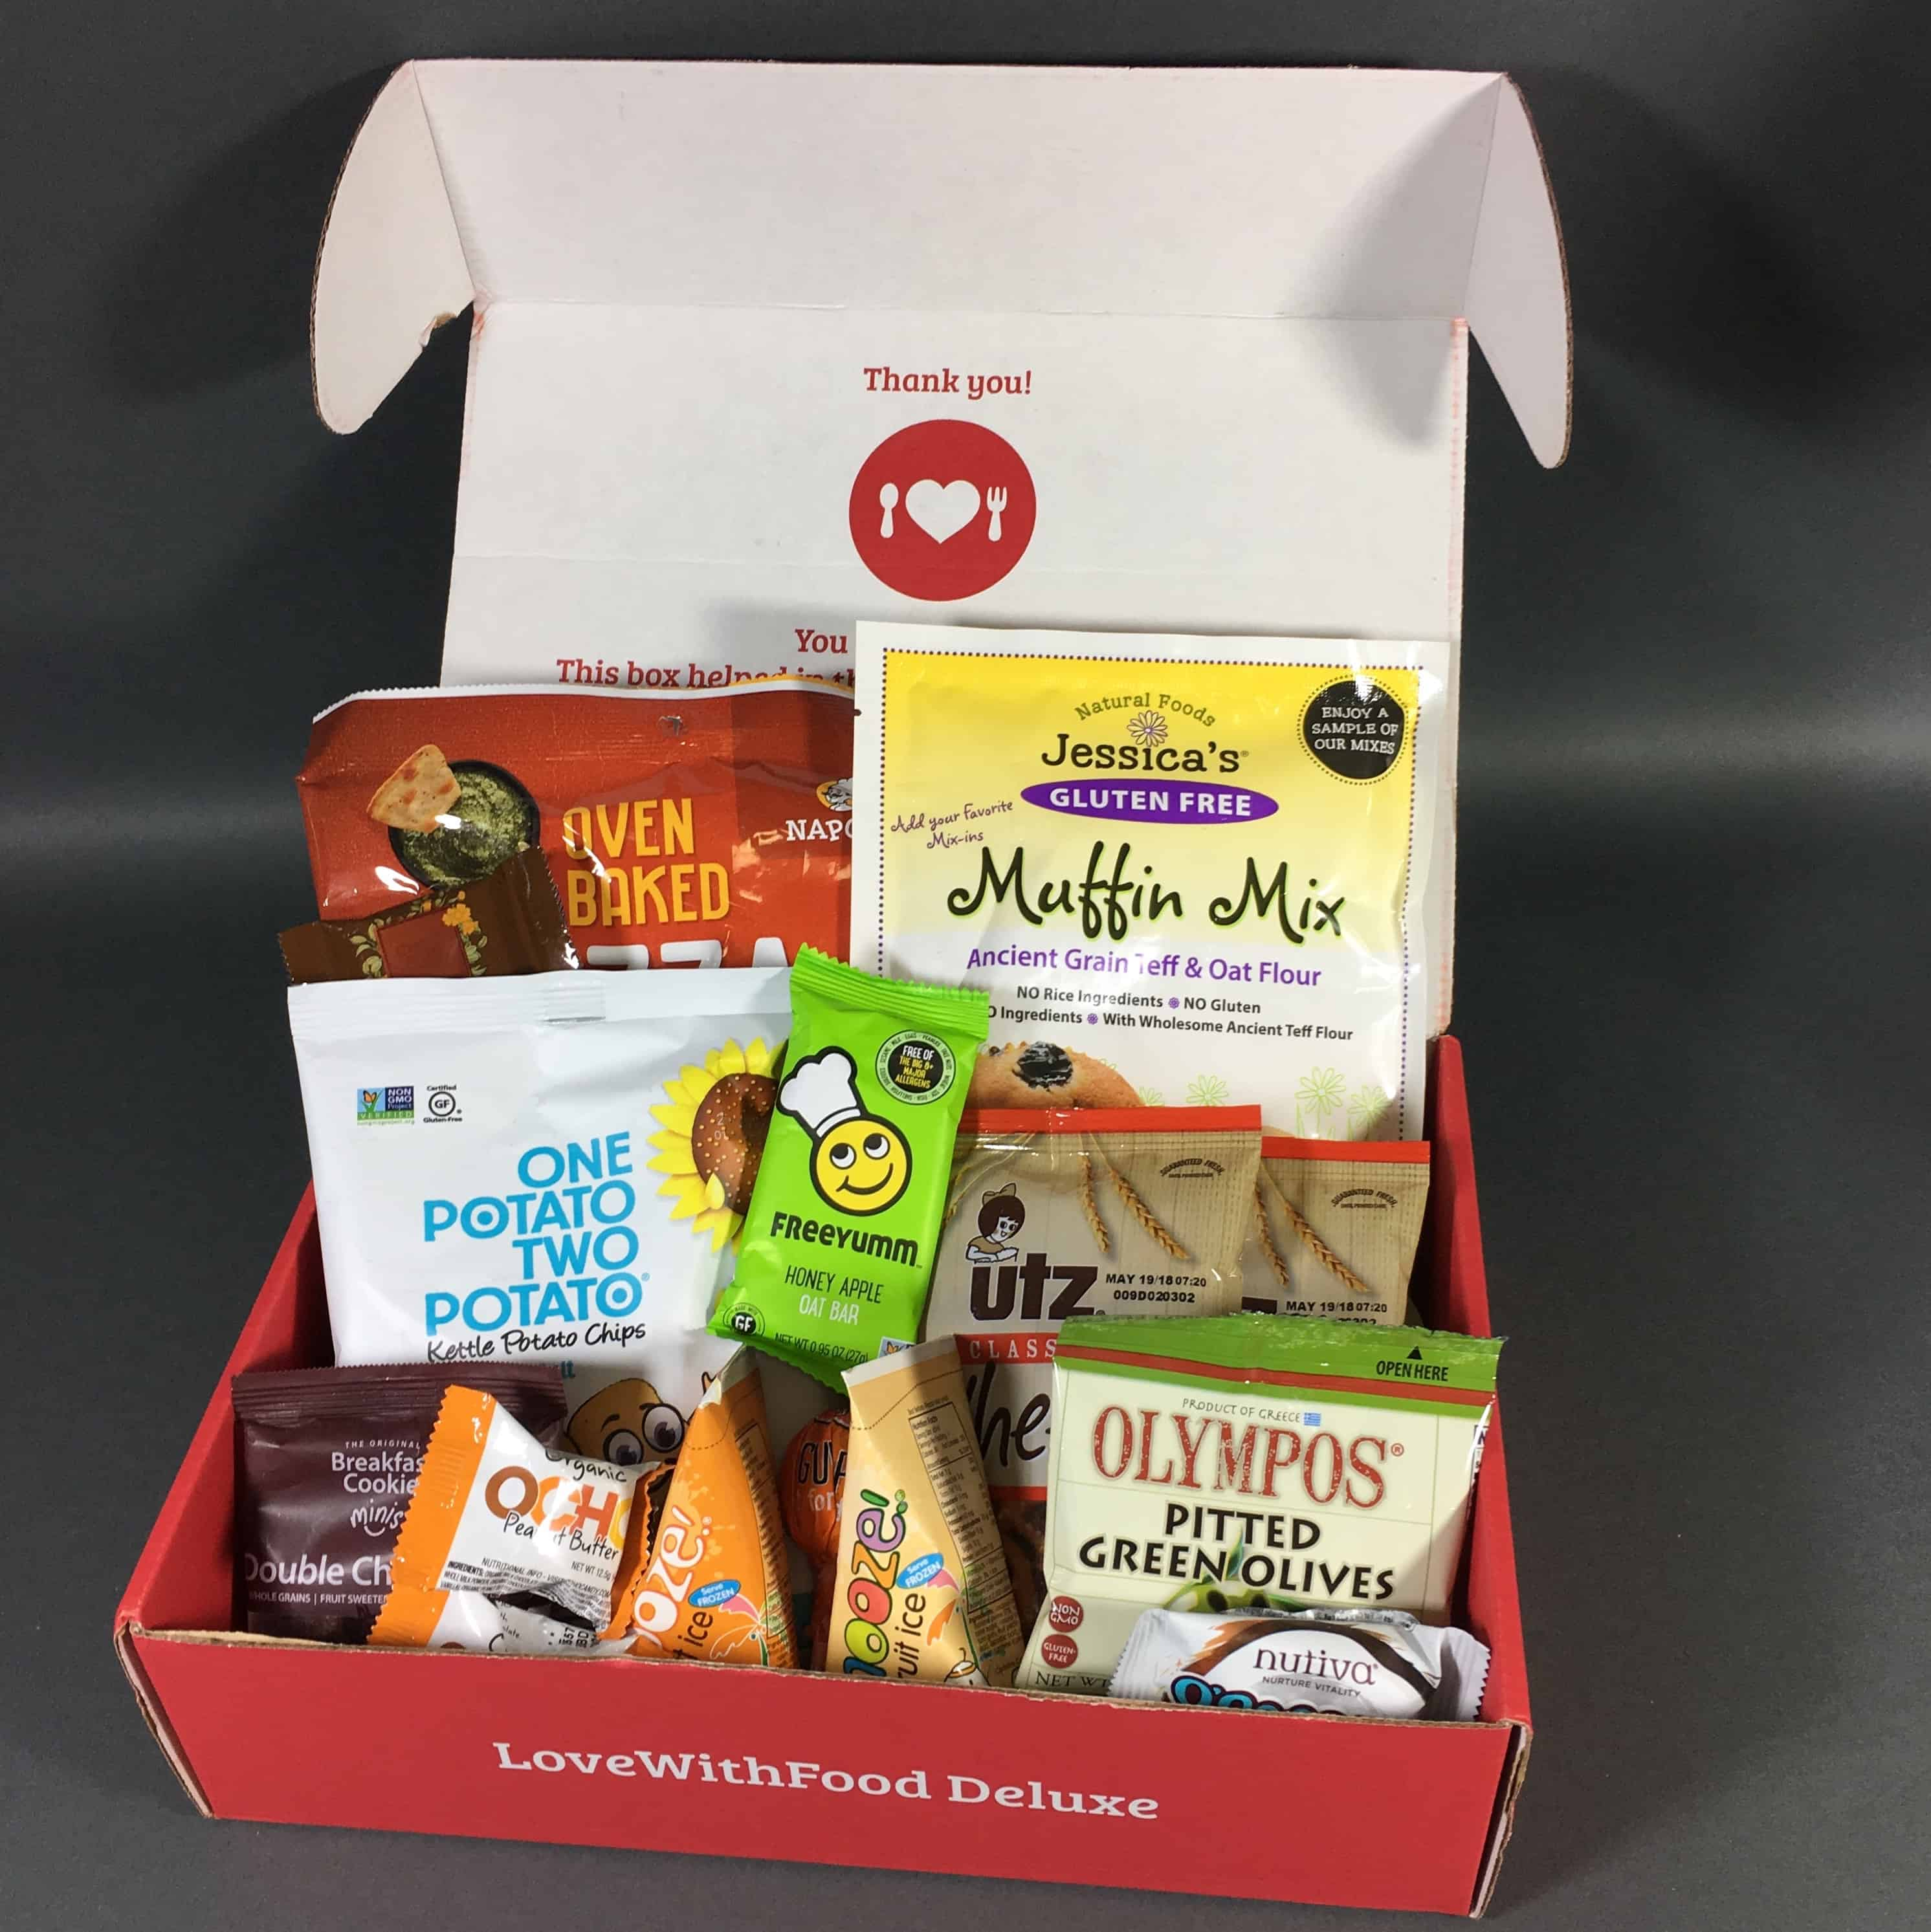 Love With Food February 2018 Deluxe Box Review + Coupon